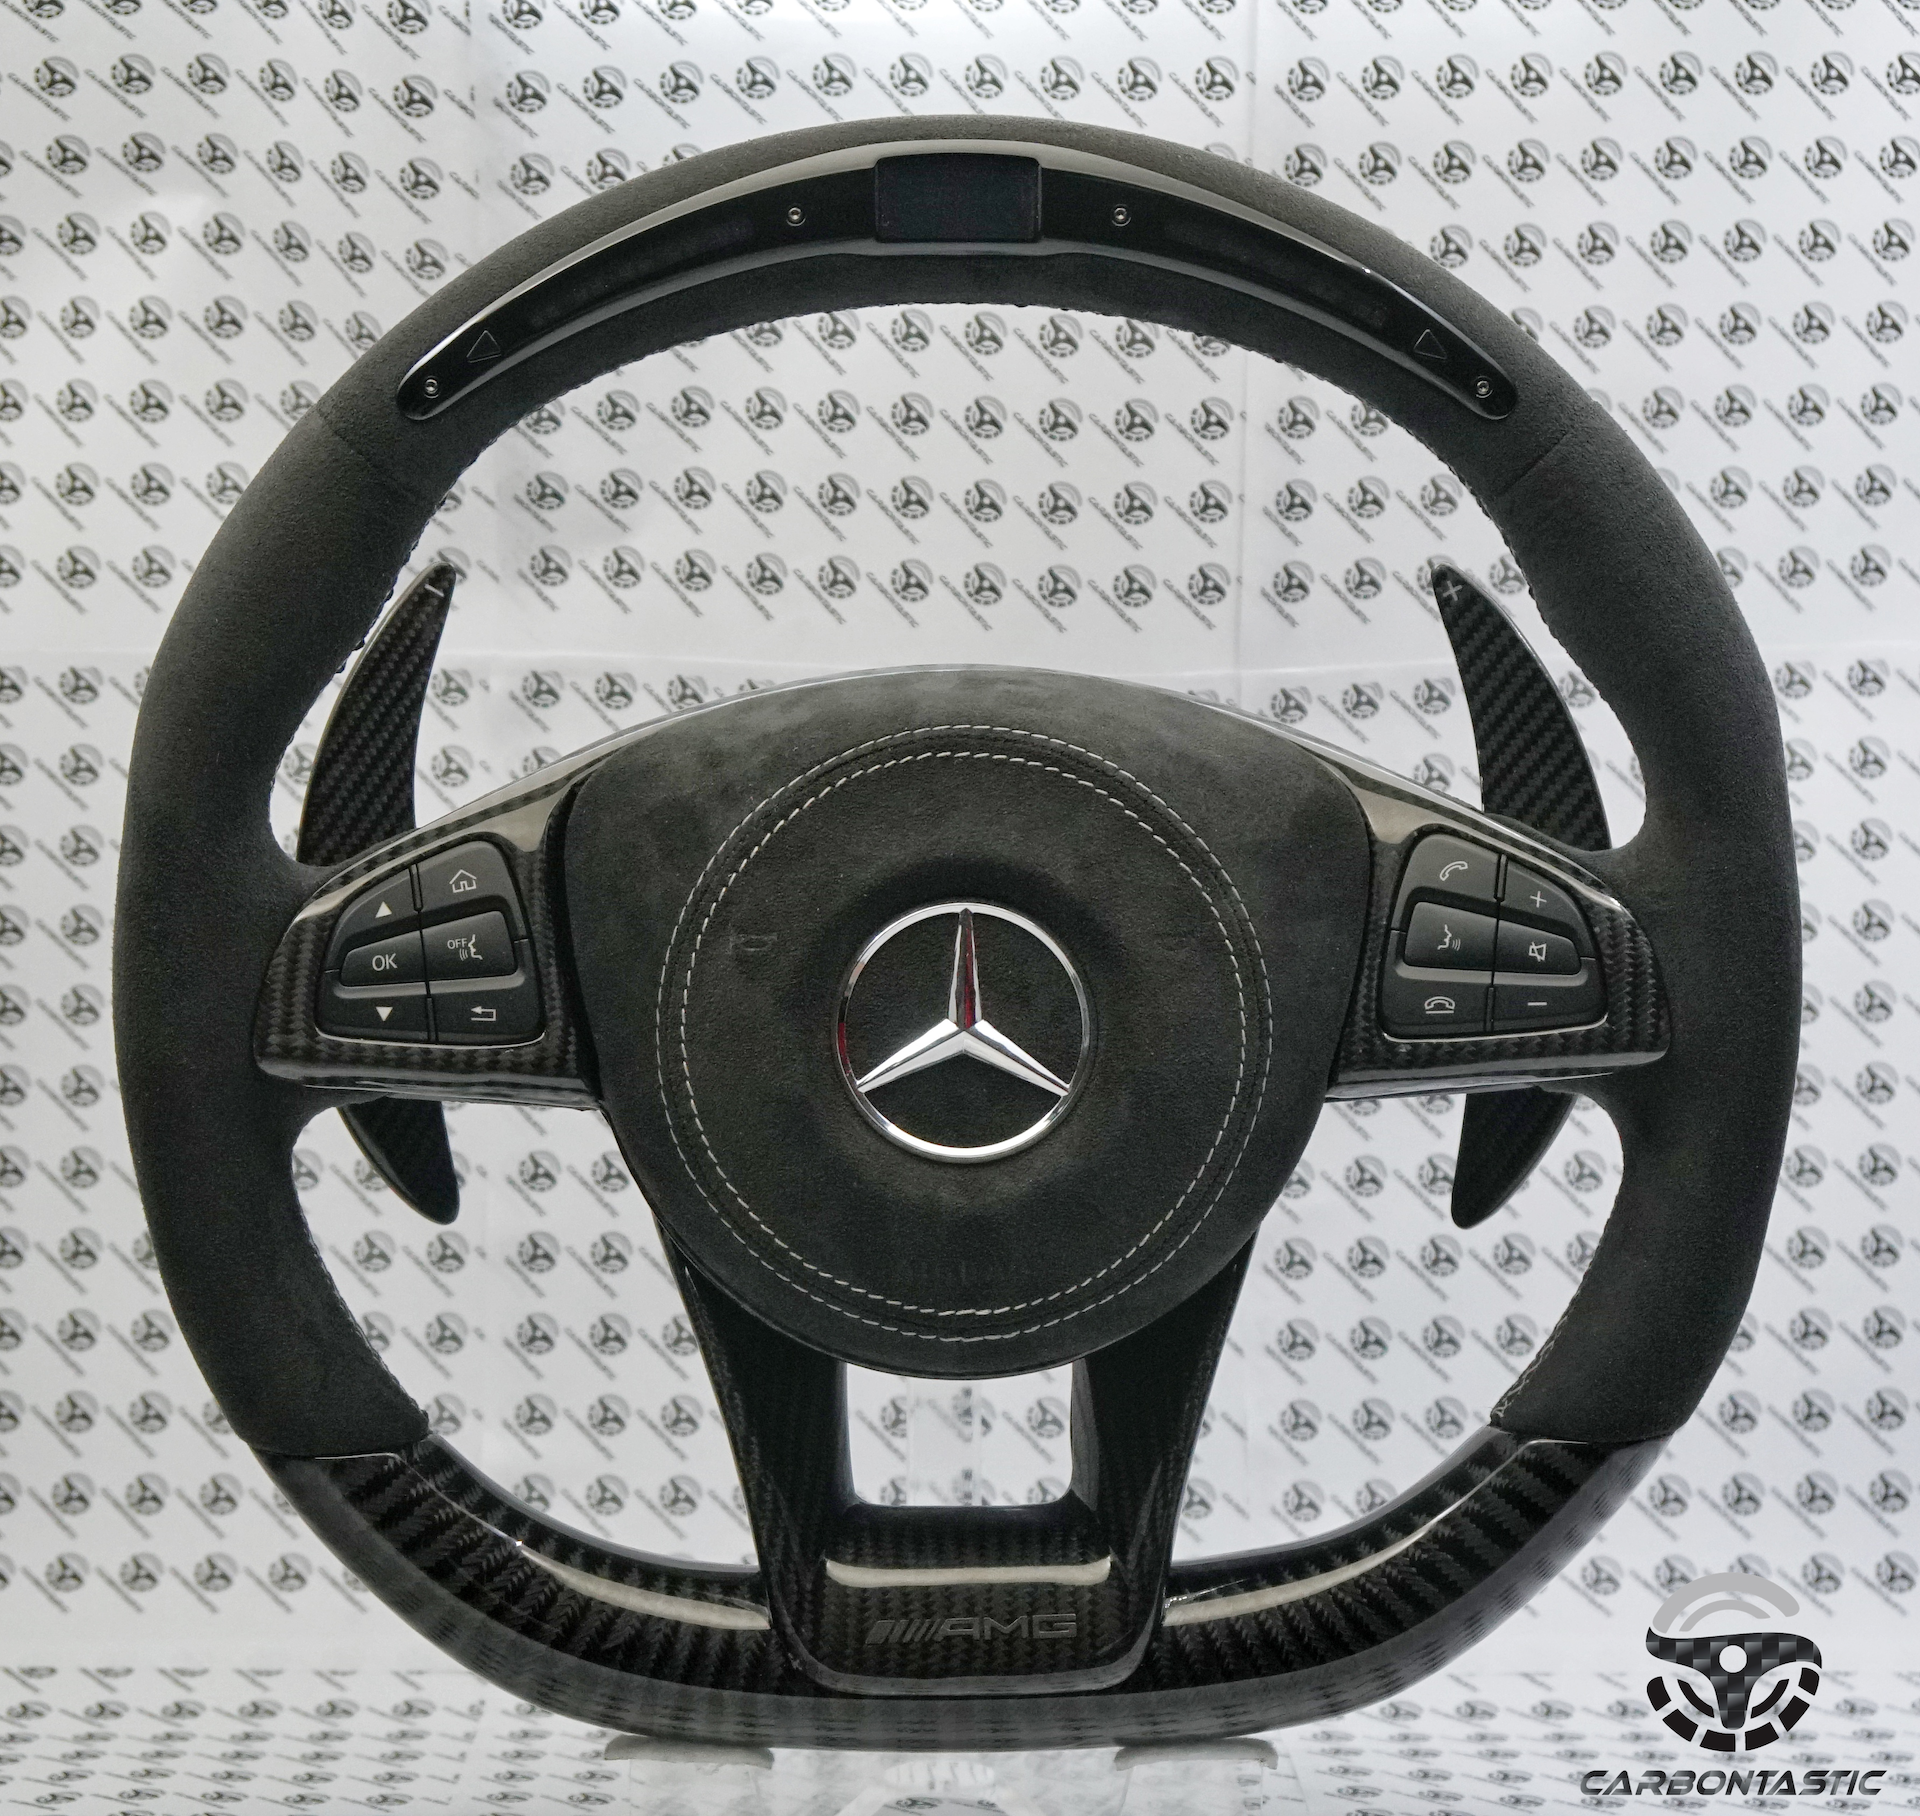 Mercedes-Benz Custom LCD Screen Shift Light Steering Wheel | carbontastic